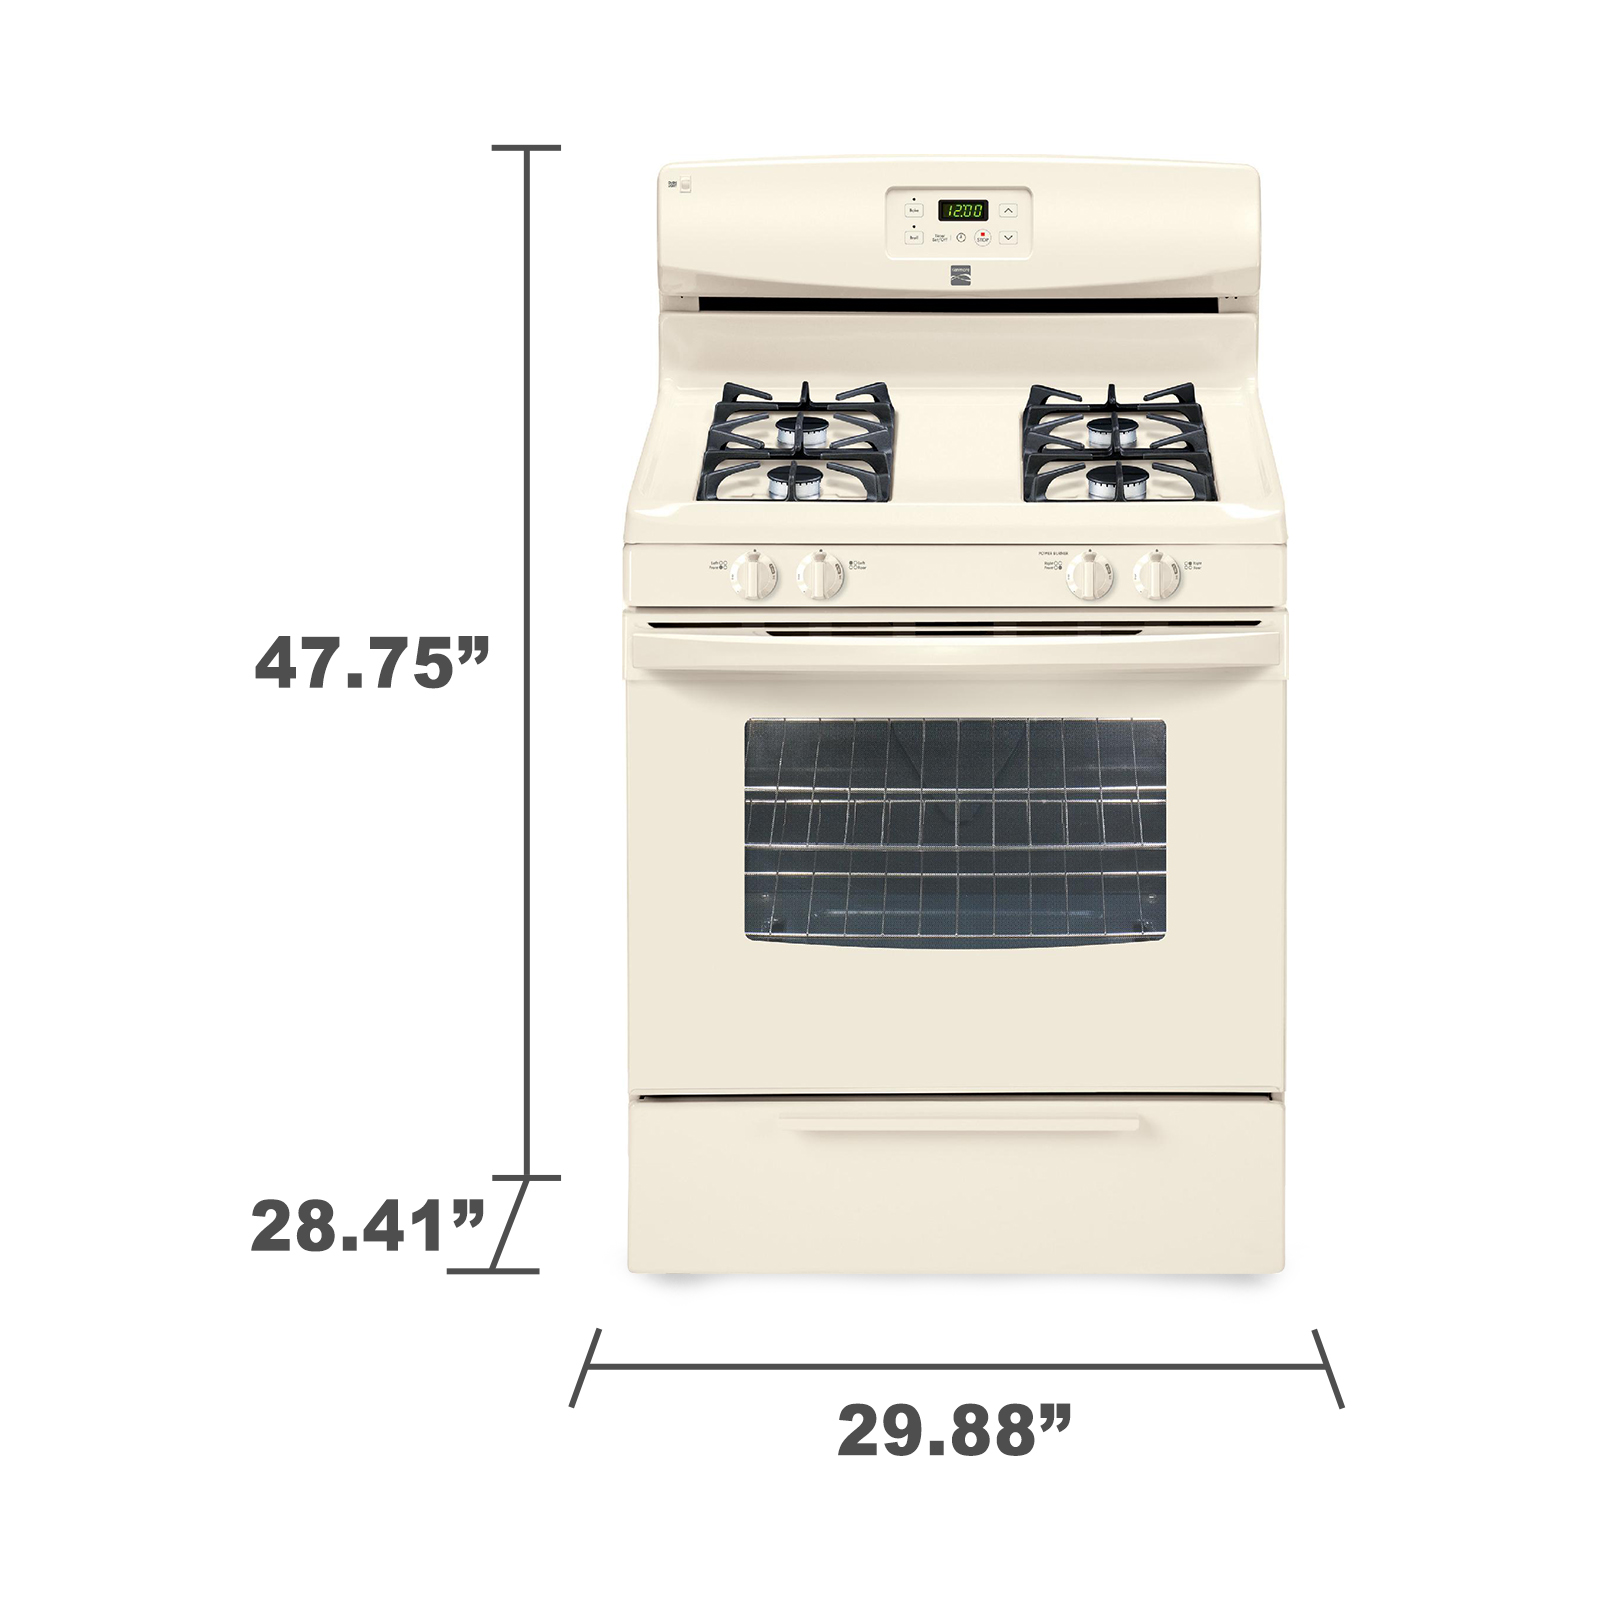 Kenmore 73234 4.2 cu. ft. Gas Range w/ Broil & Serve™ Drawer - Bisque